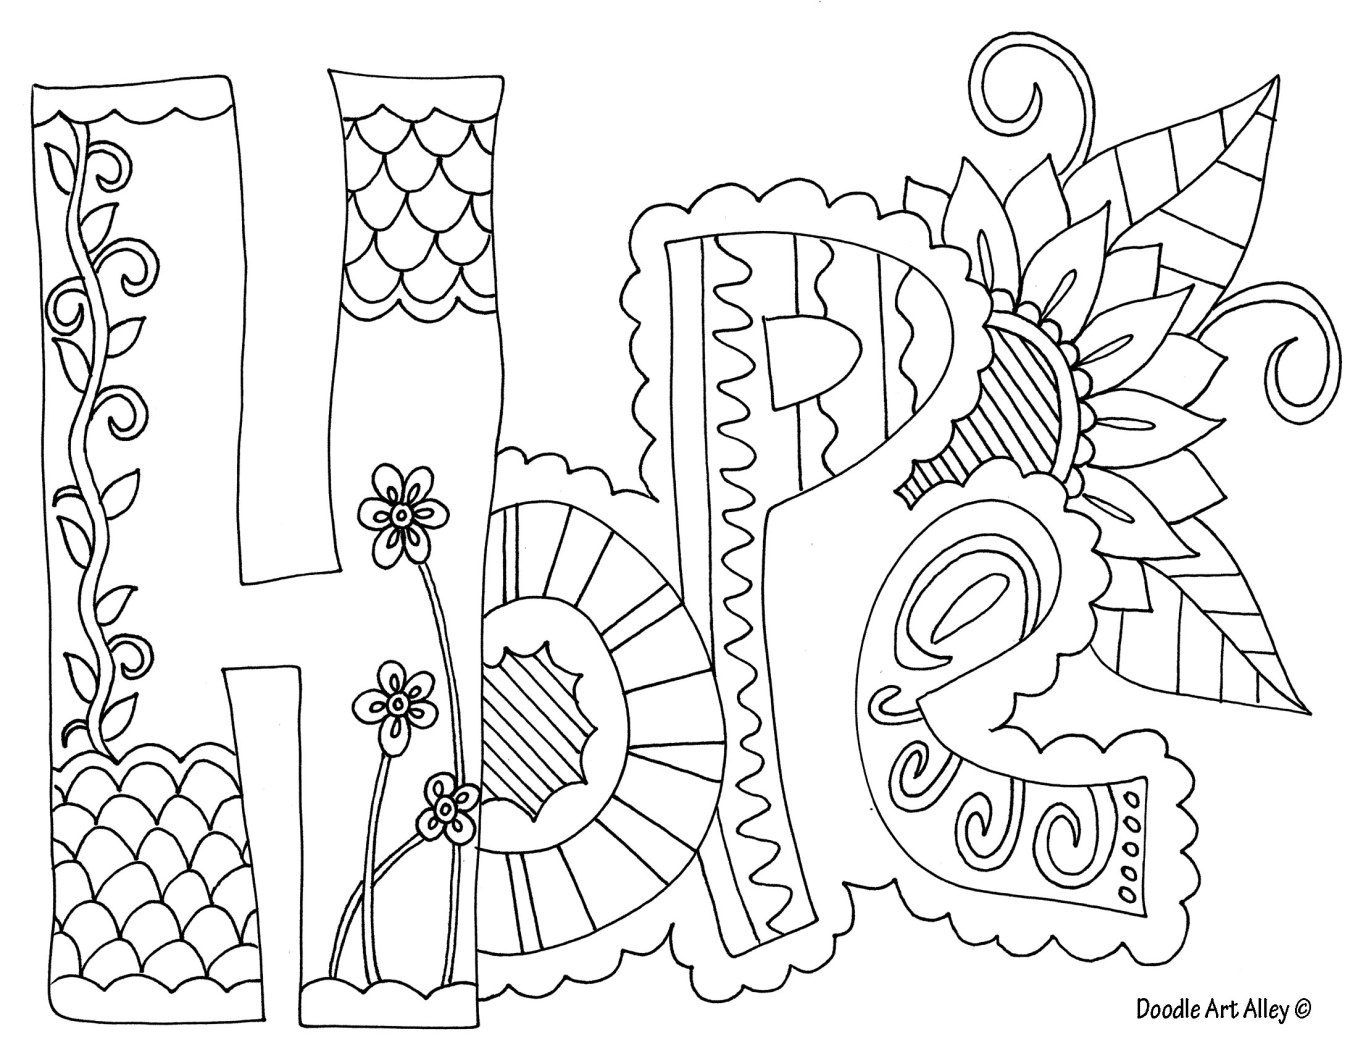 Hope coloring page to encourage